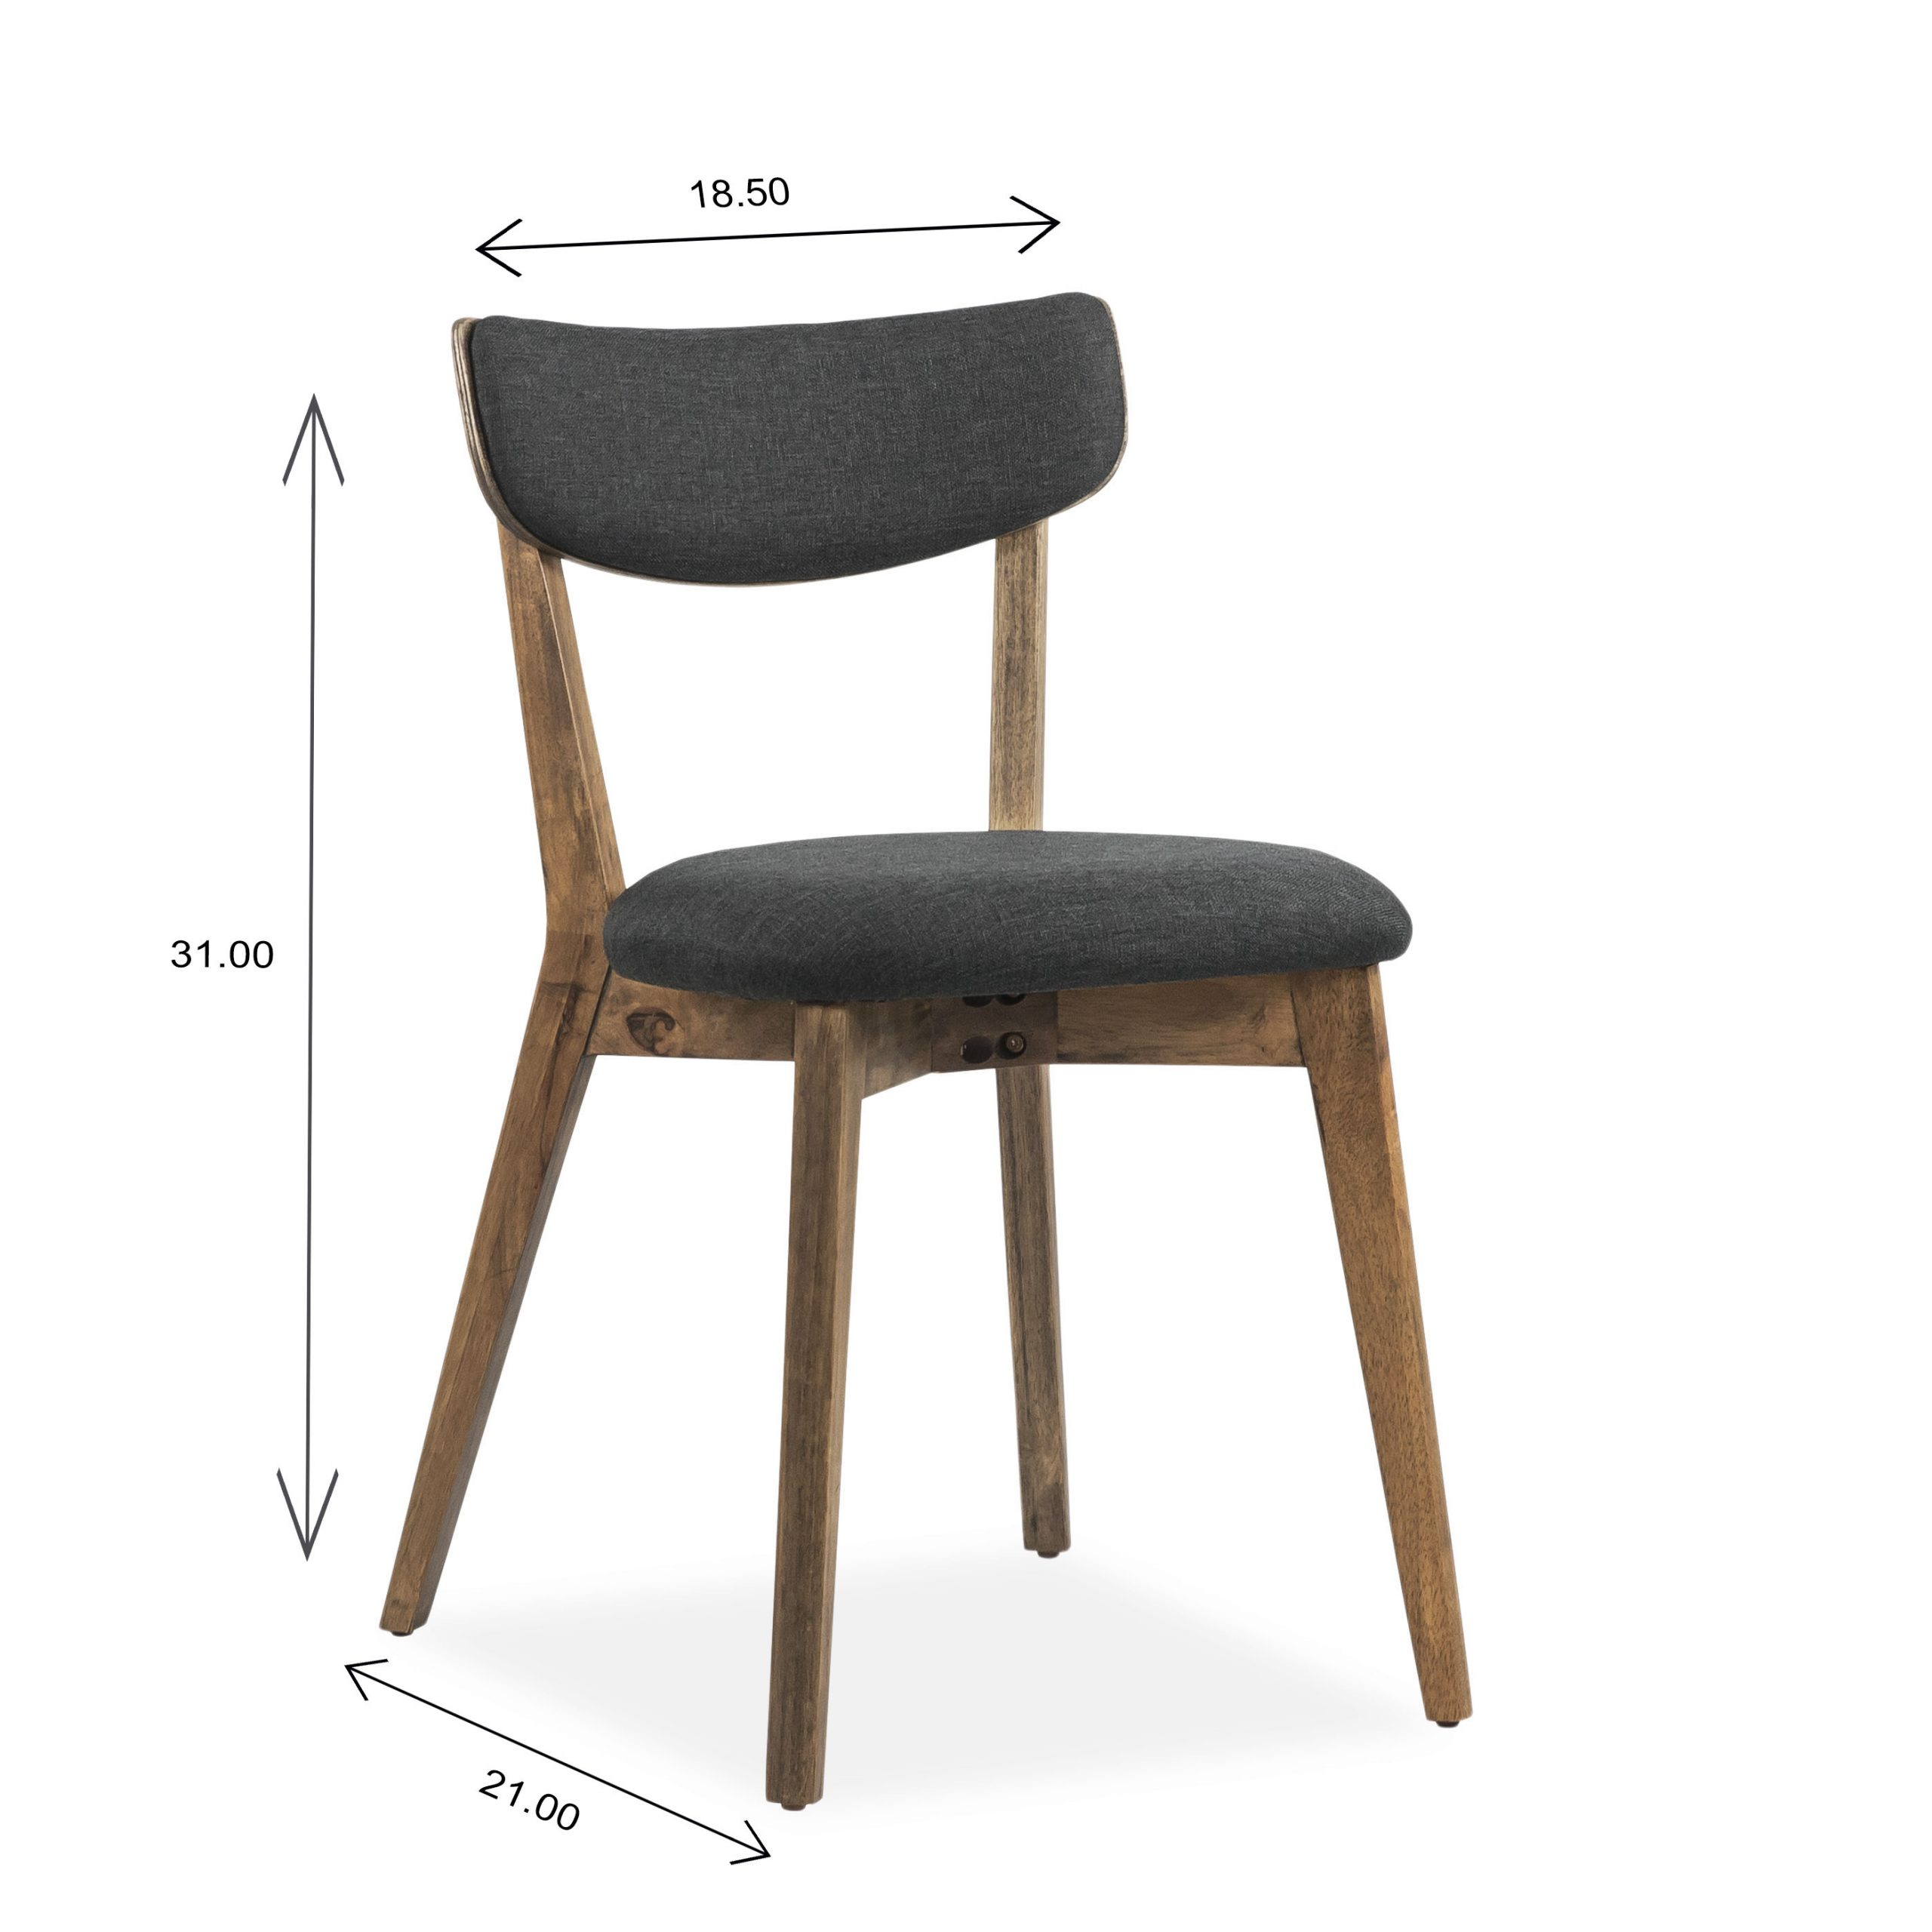 Sedona Dining Chair Dimensions